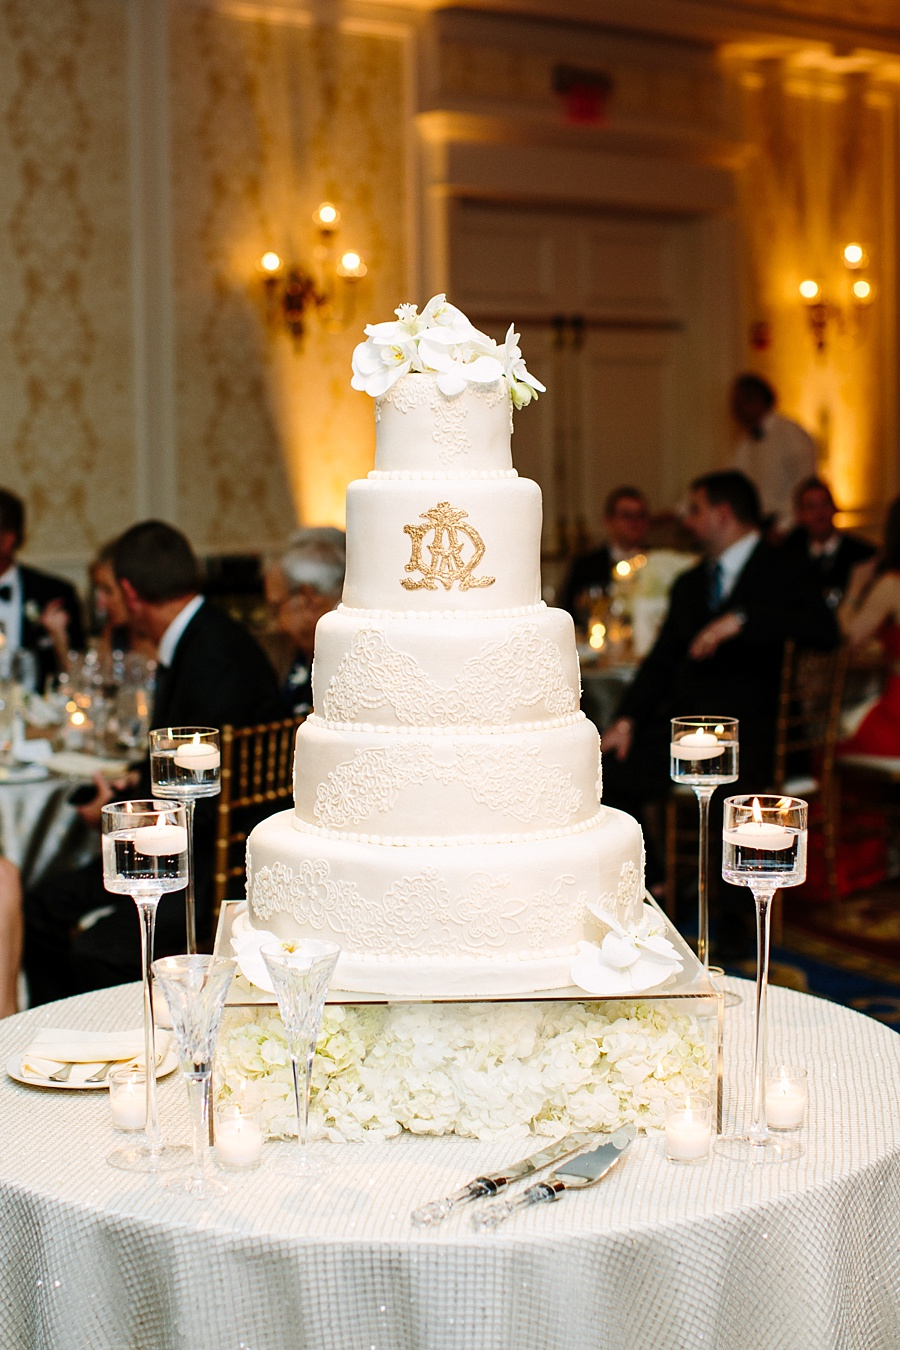 All white wedding cake with gold monogram | Edible Art Bakery of Raleigh